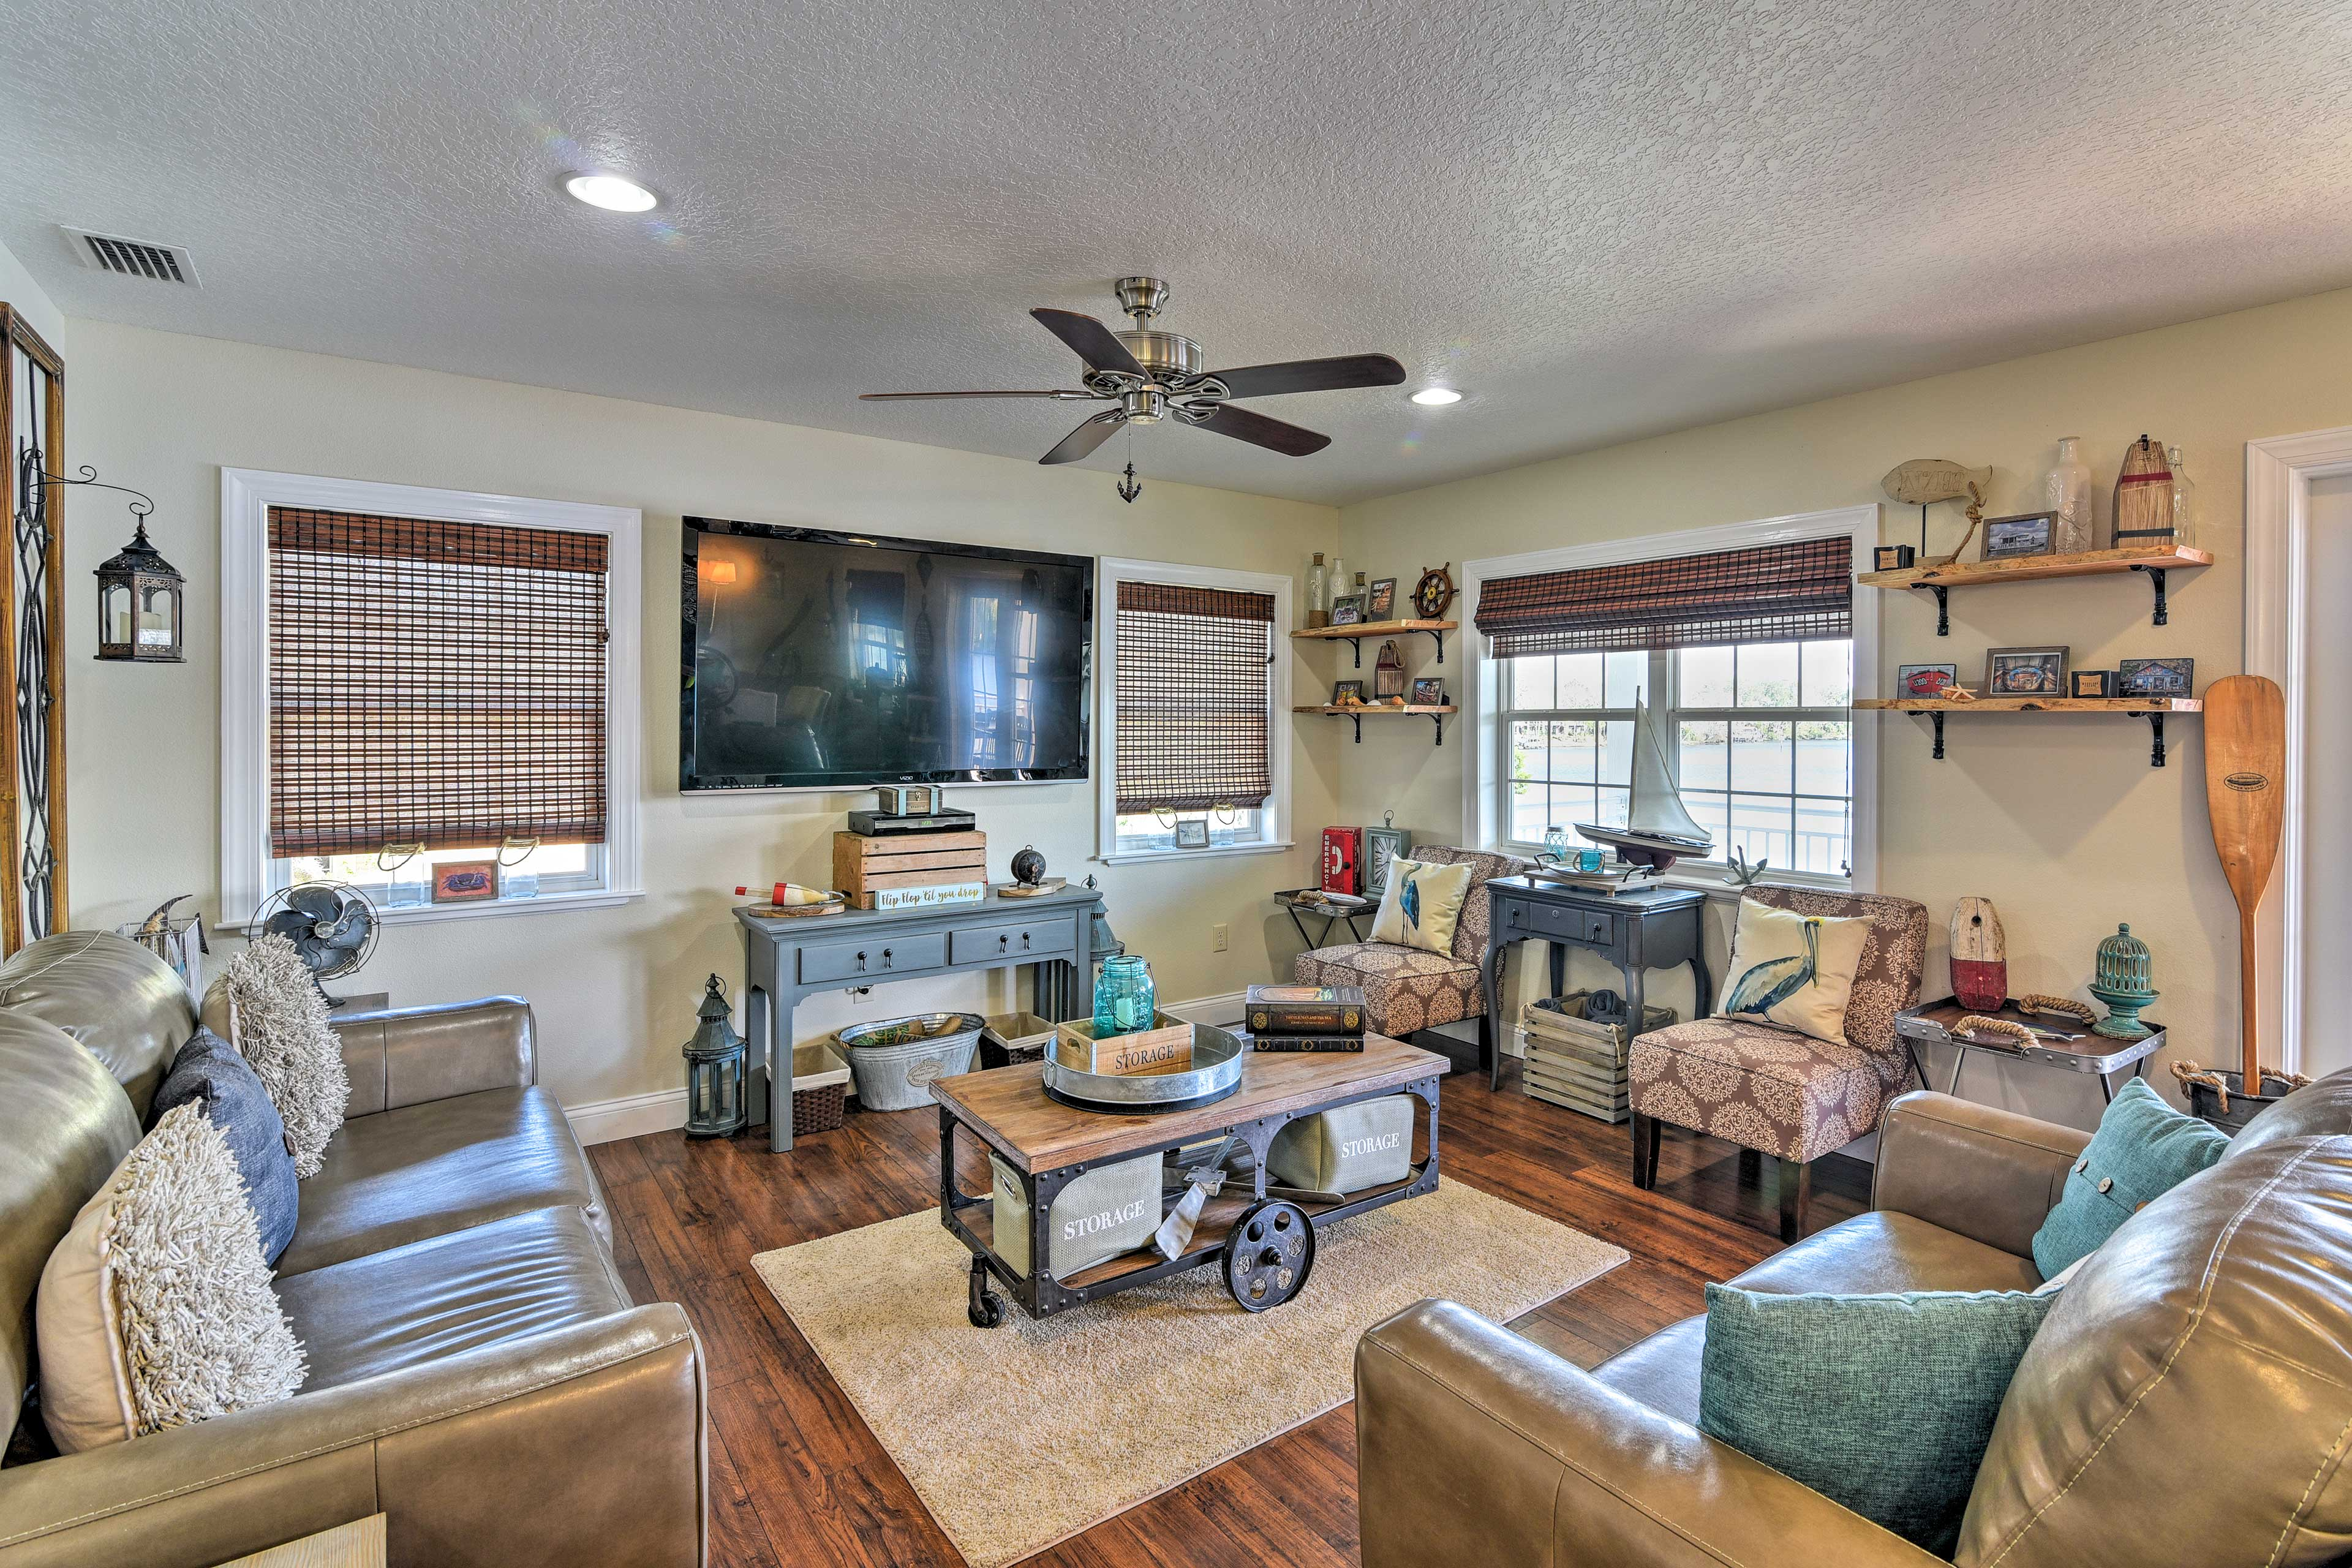 Decorated in upscale coastal decor, this home is ideal for groups of 8.